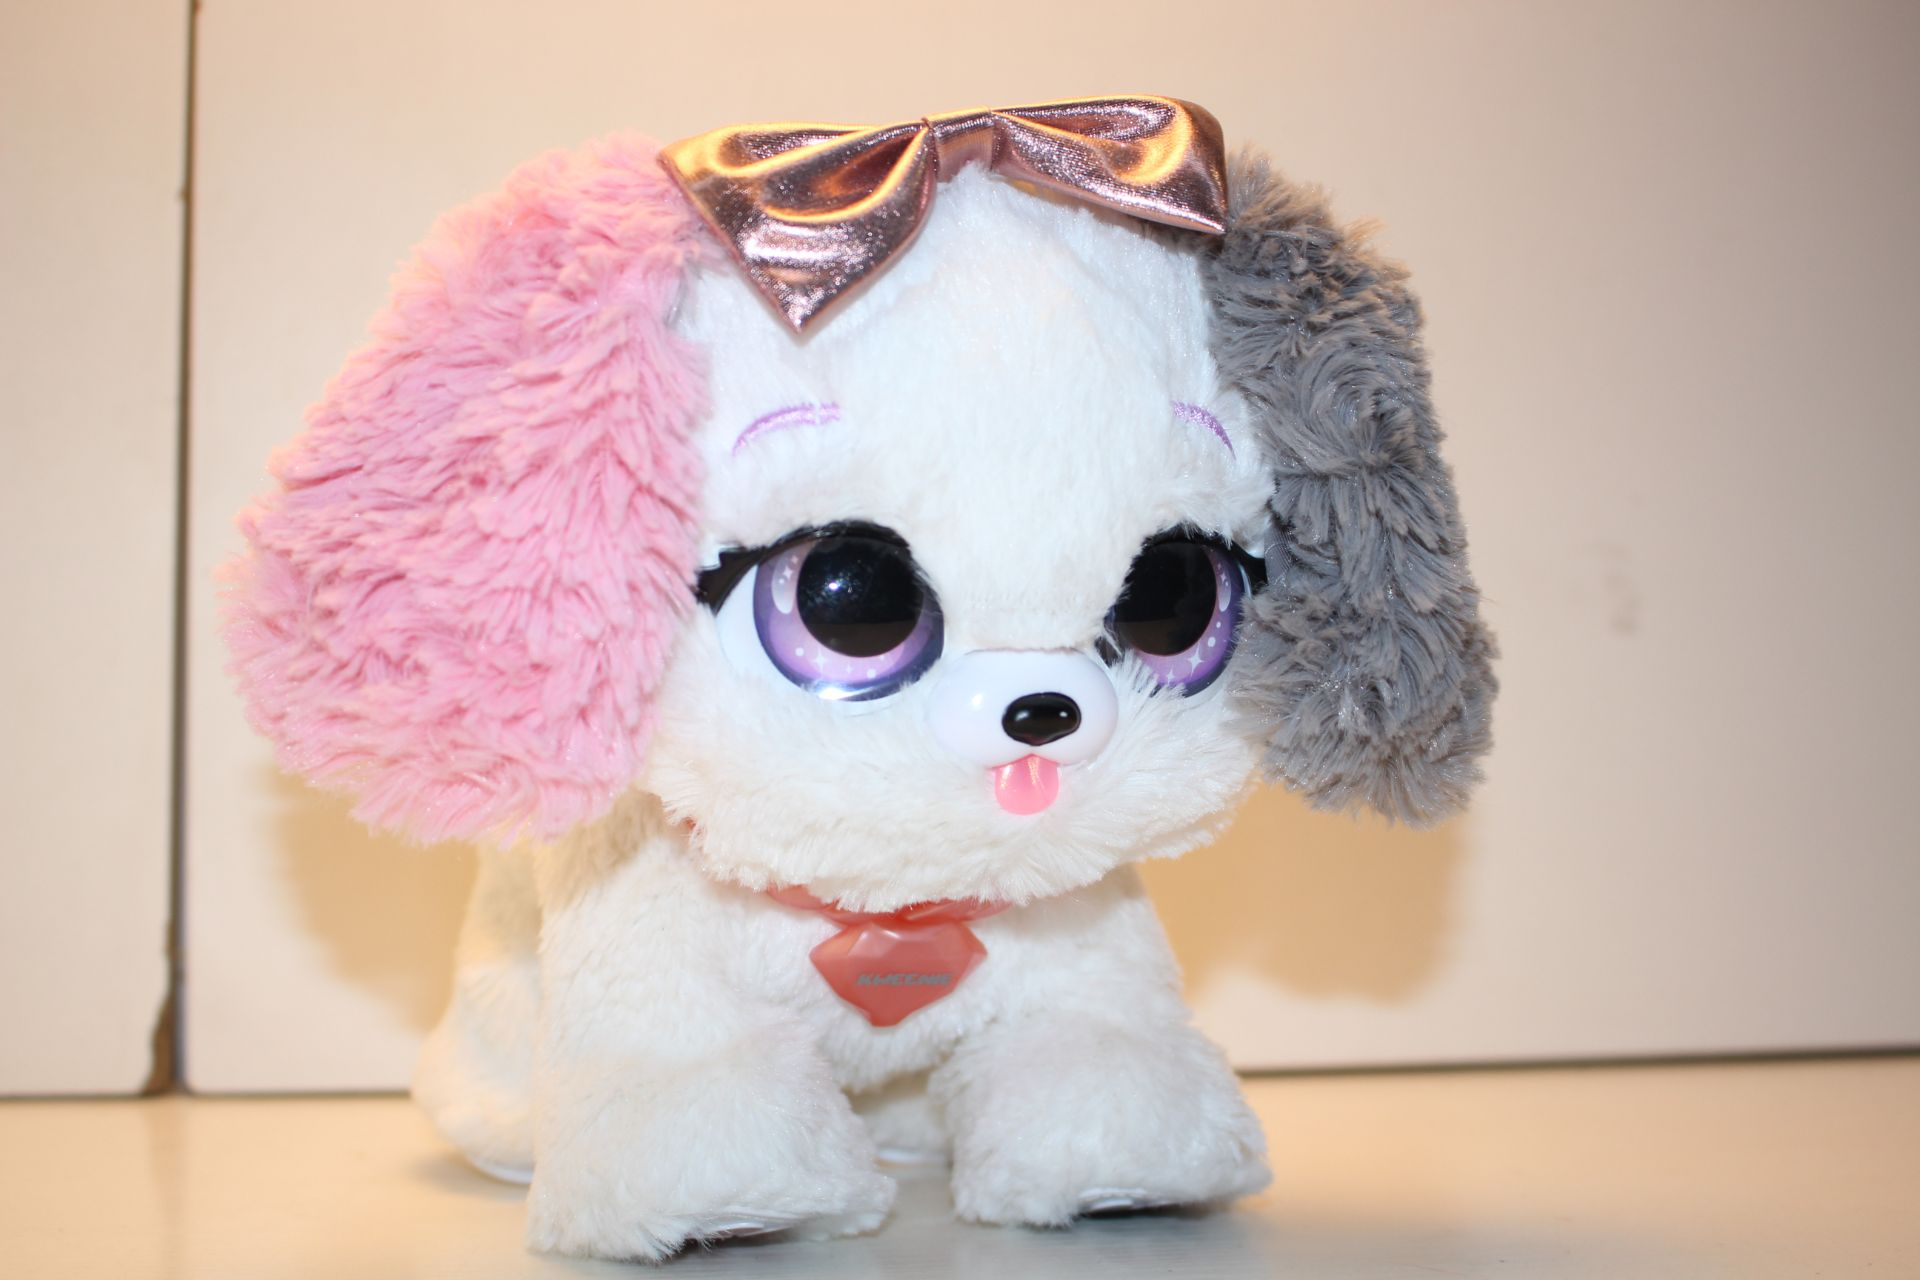 UNBOXED KWEENIE DOG TOY Condition ReportAppraisal Available on Request- All Items are Unchecked/